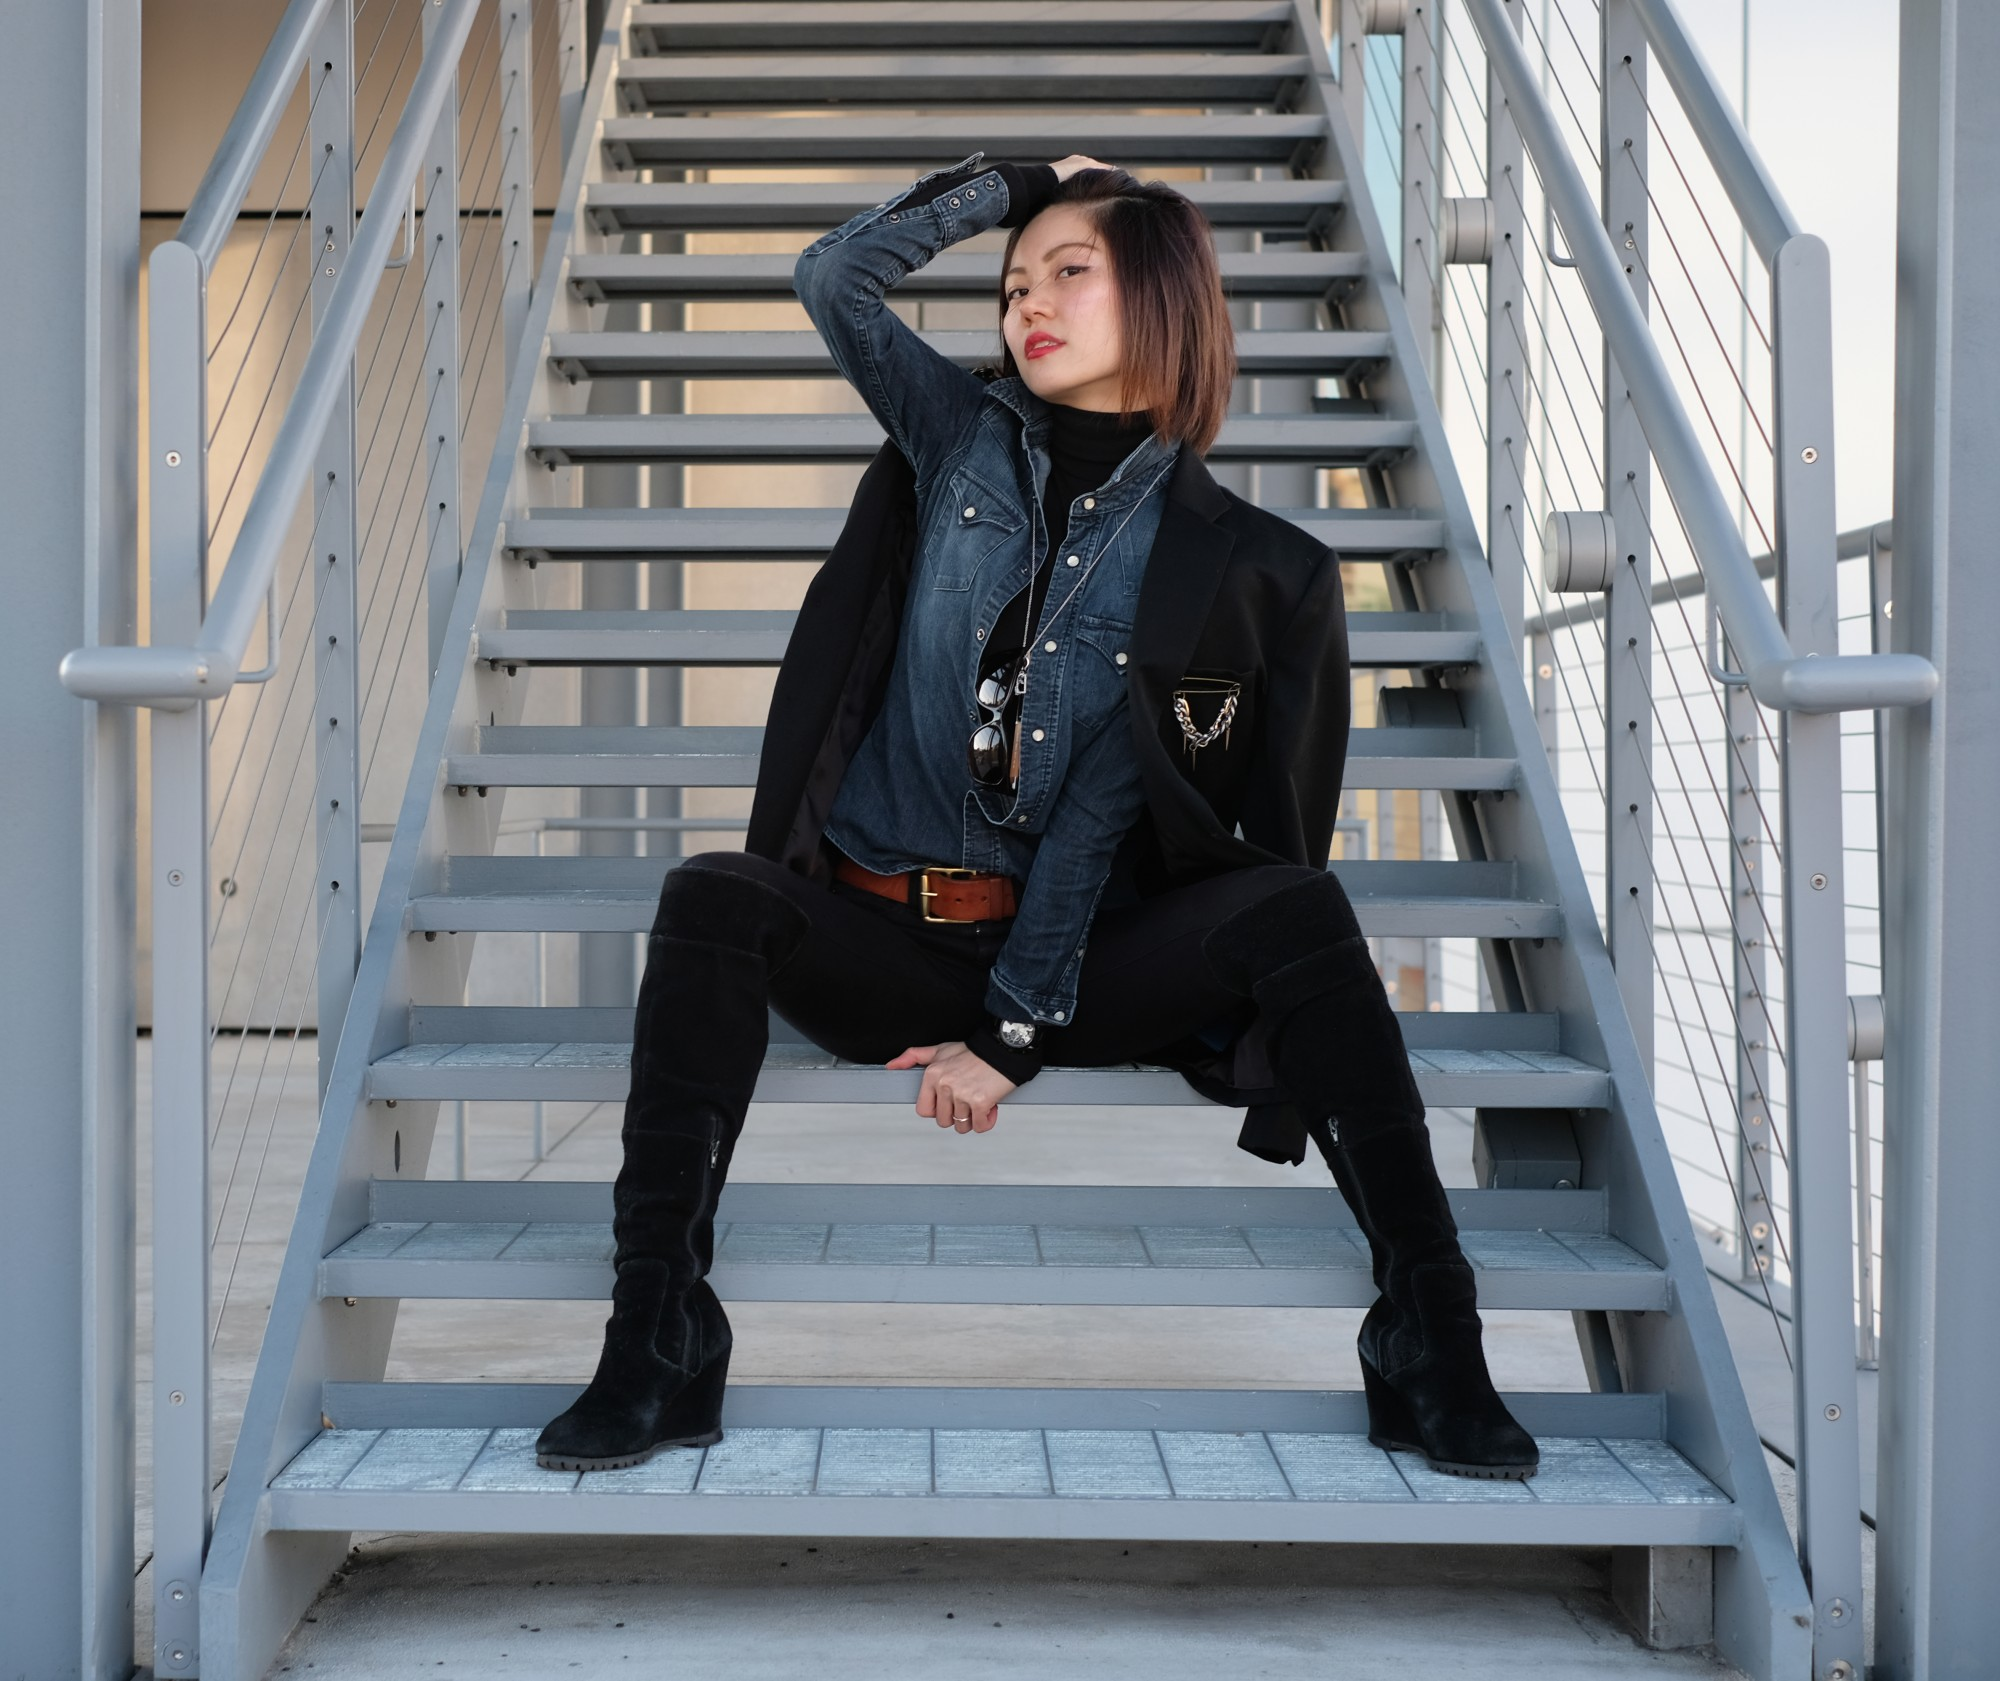 Asian girl sitting on metal stairs